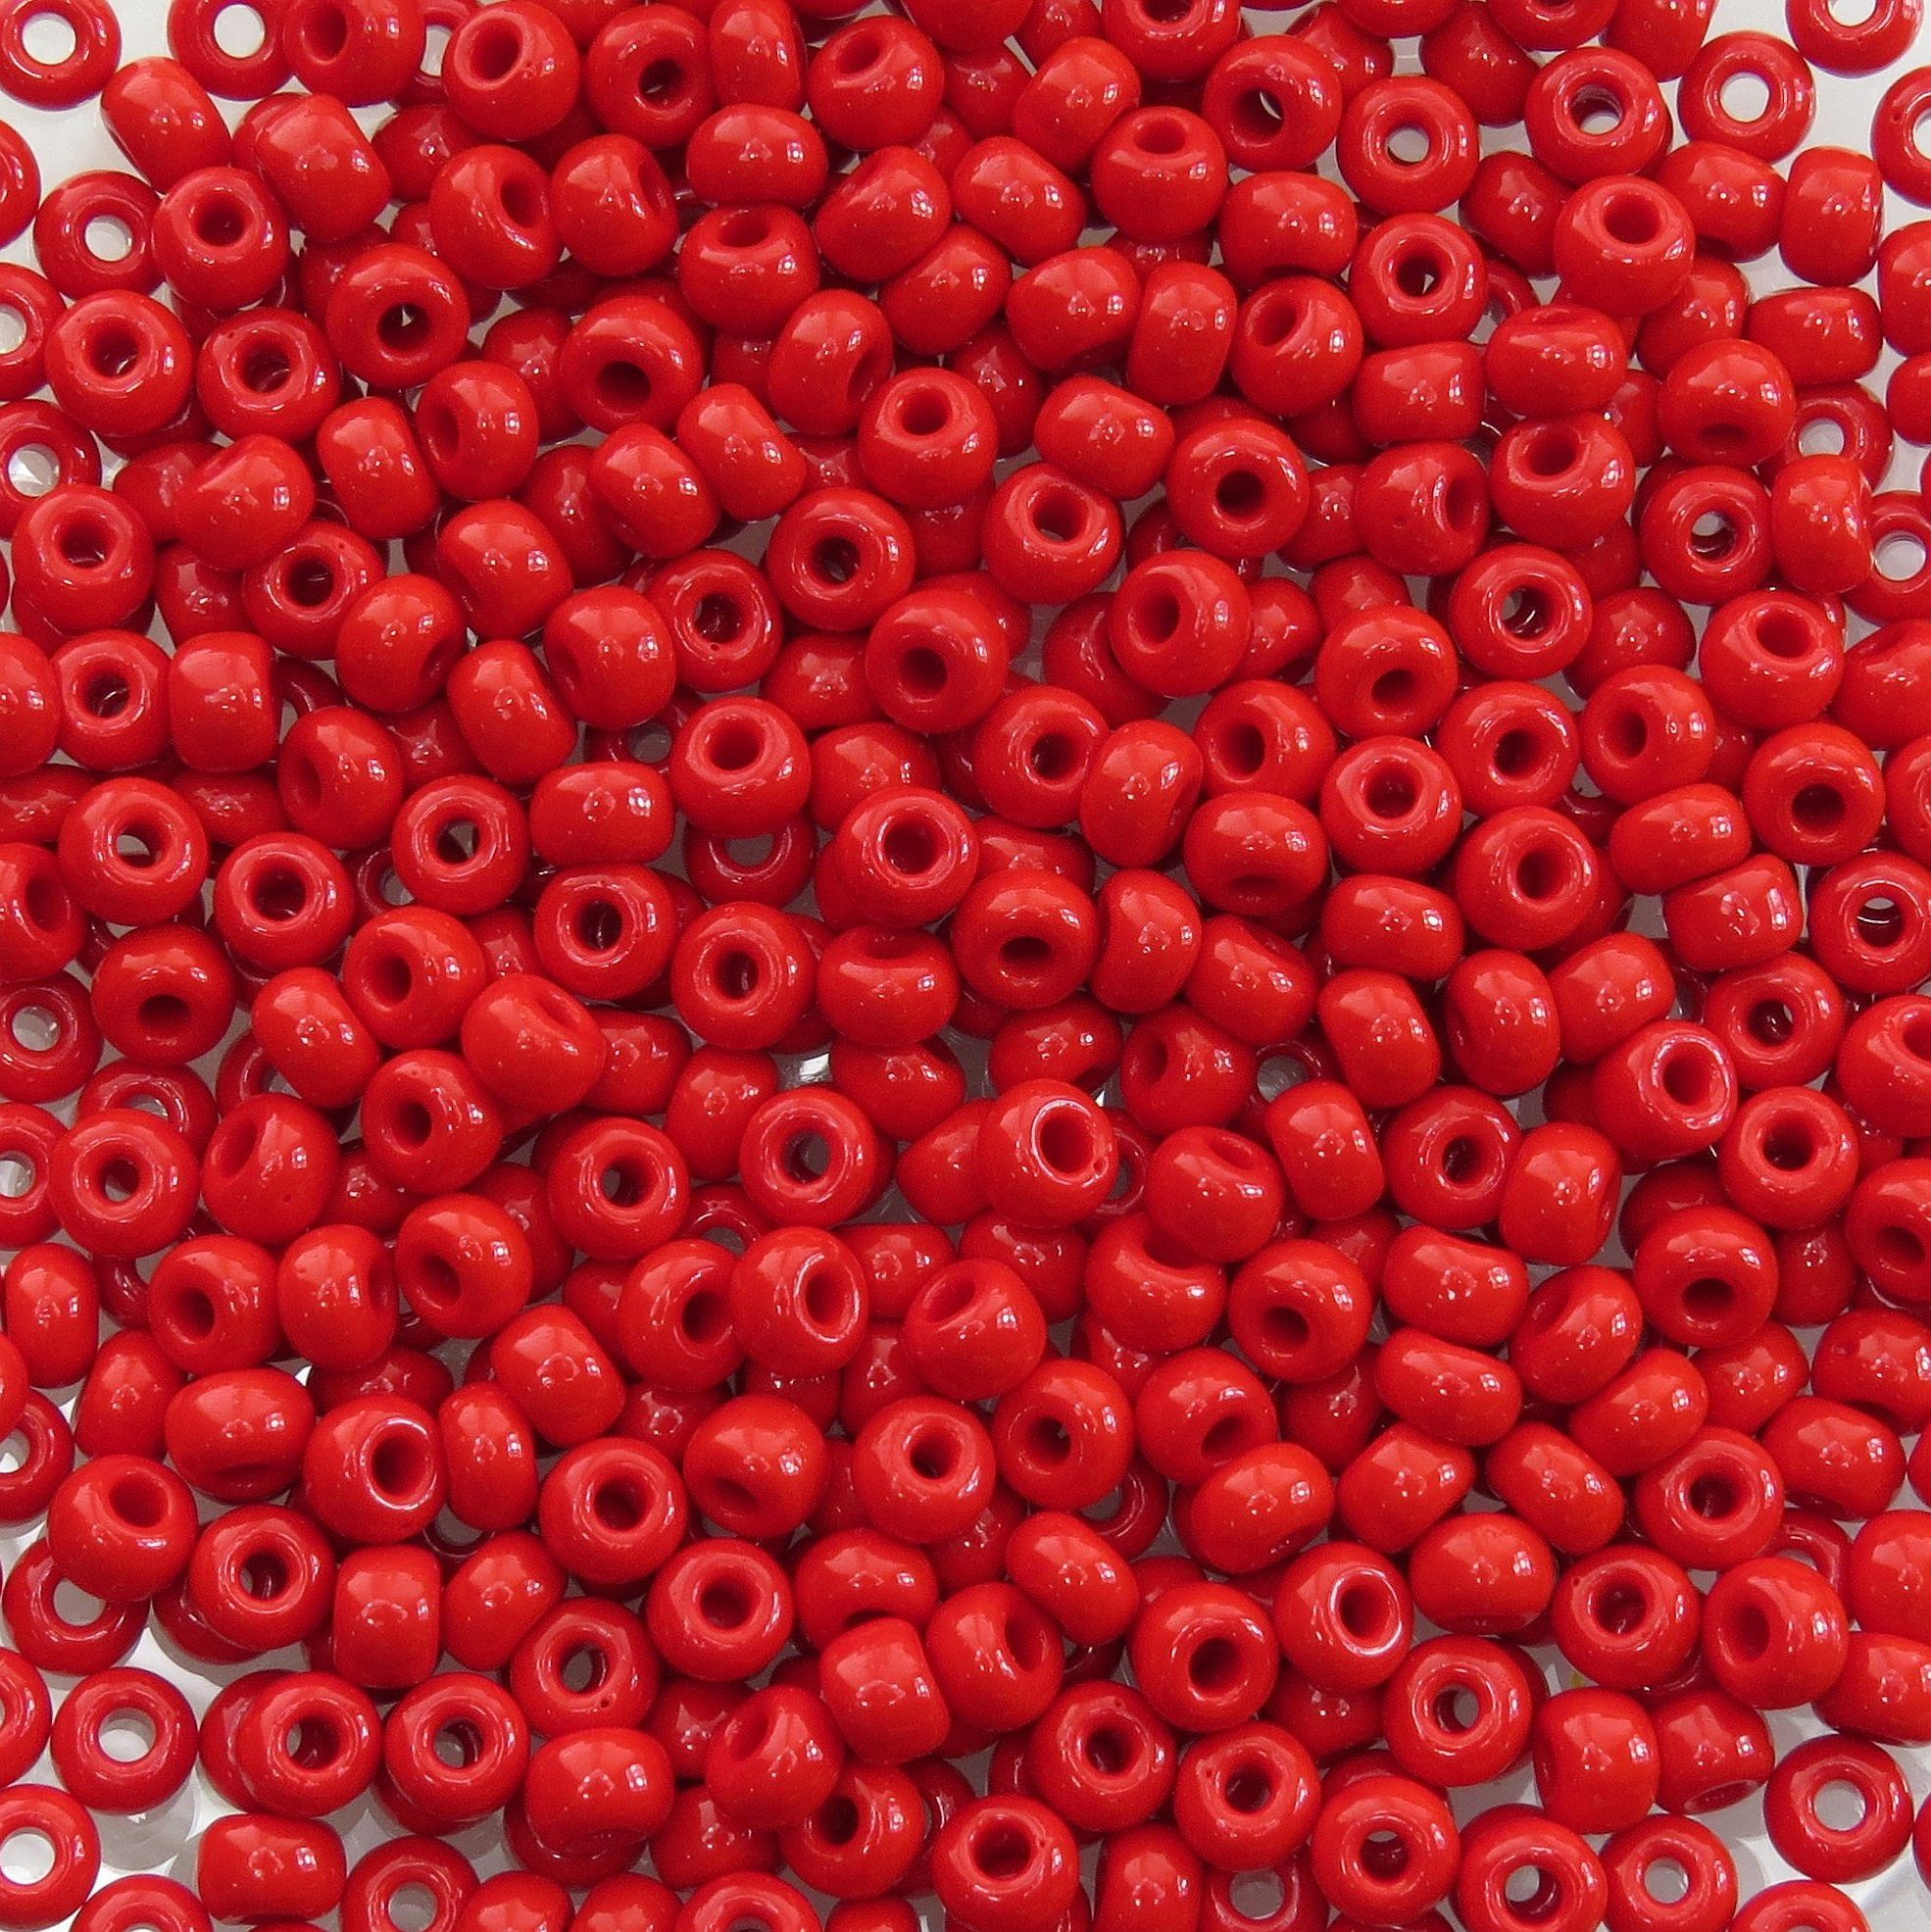 6//0 Japanese seed beads Opaque Dark  Red Luster round seed beads